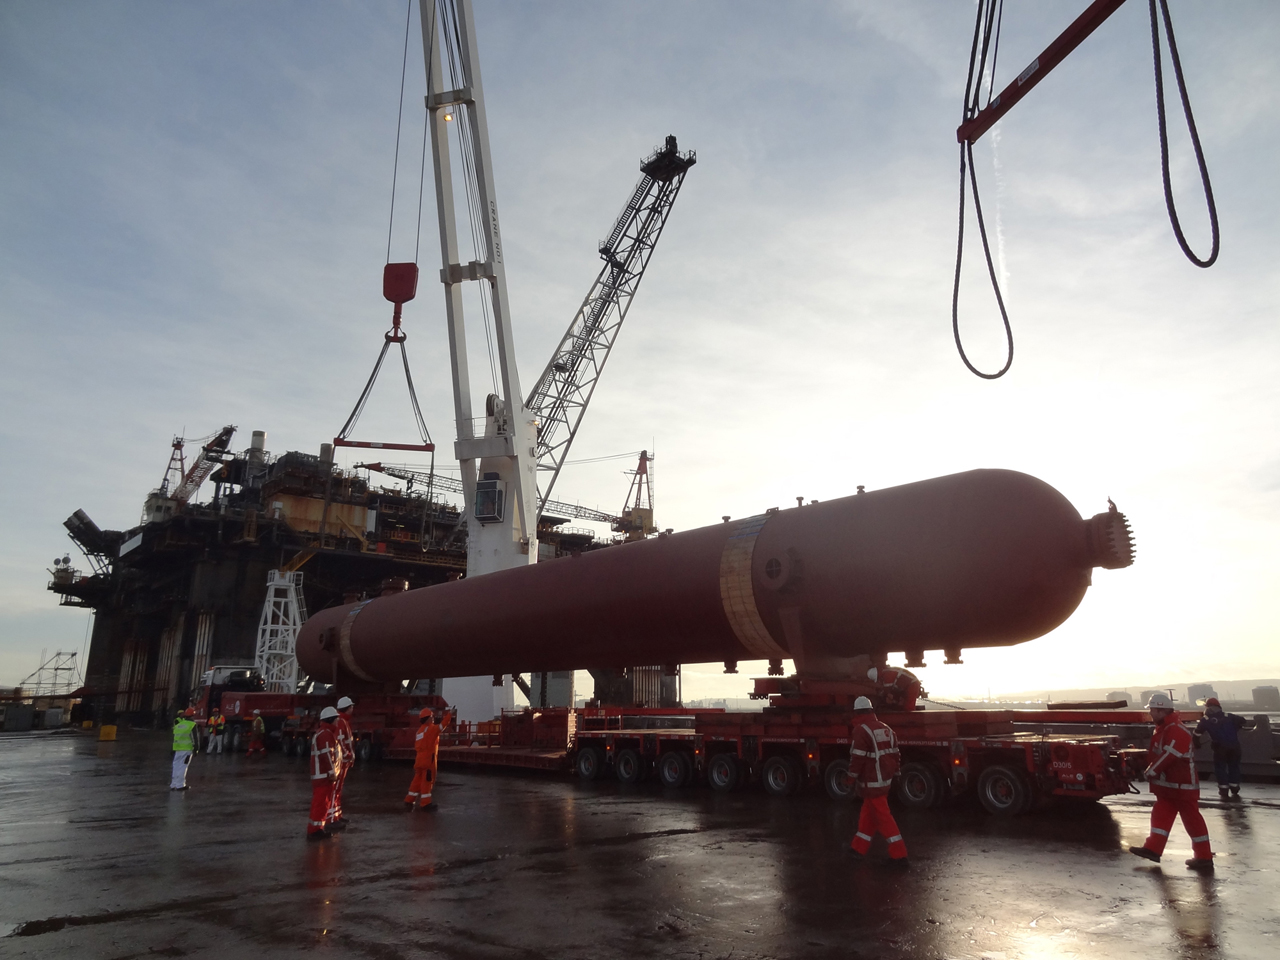 Pipeline Equipment Shipped to Able Seaton Port